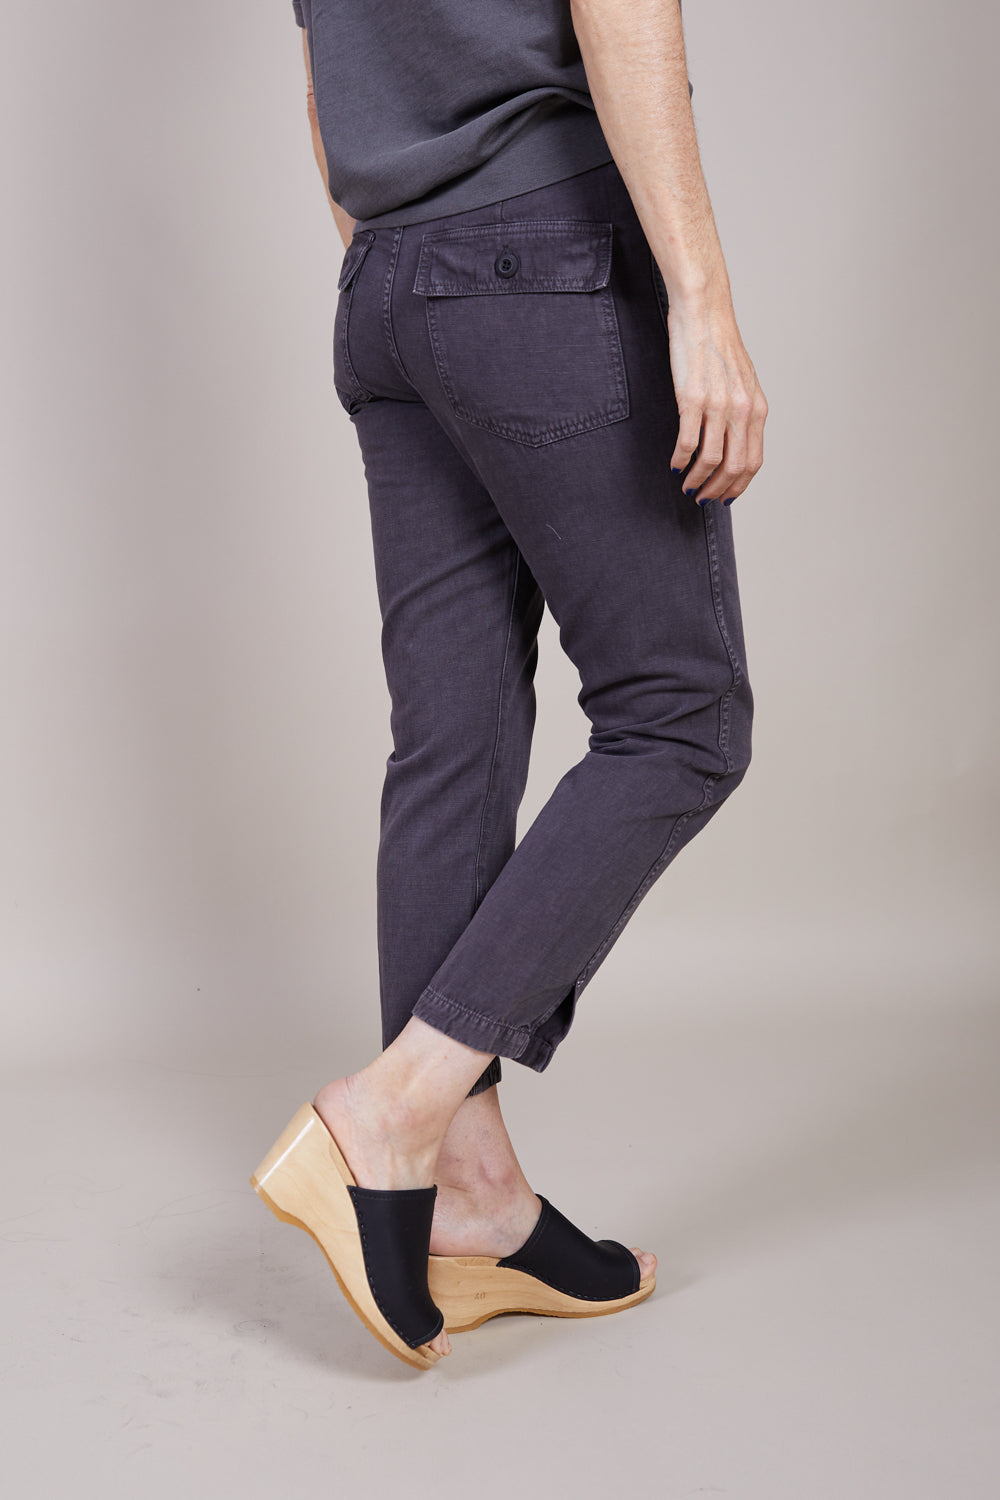 Amo Denim Army Twist in Washed Black - Vert & Vogue